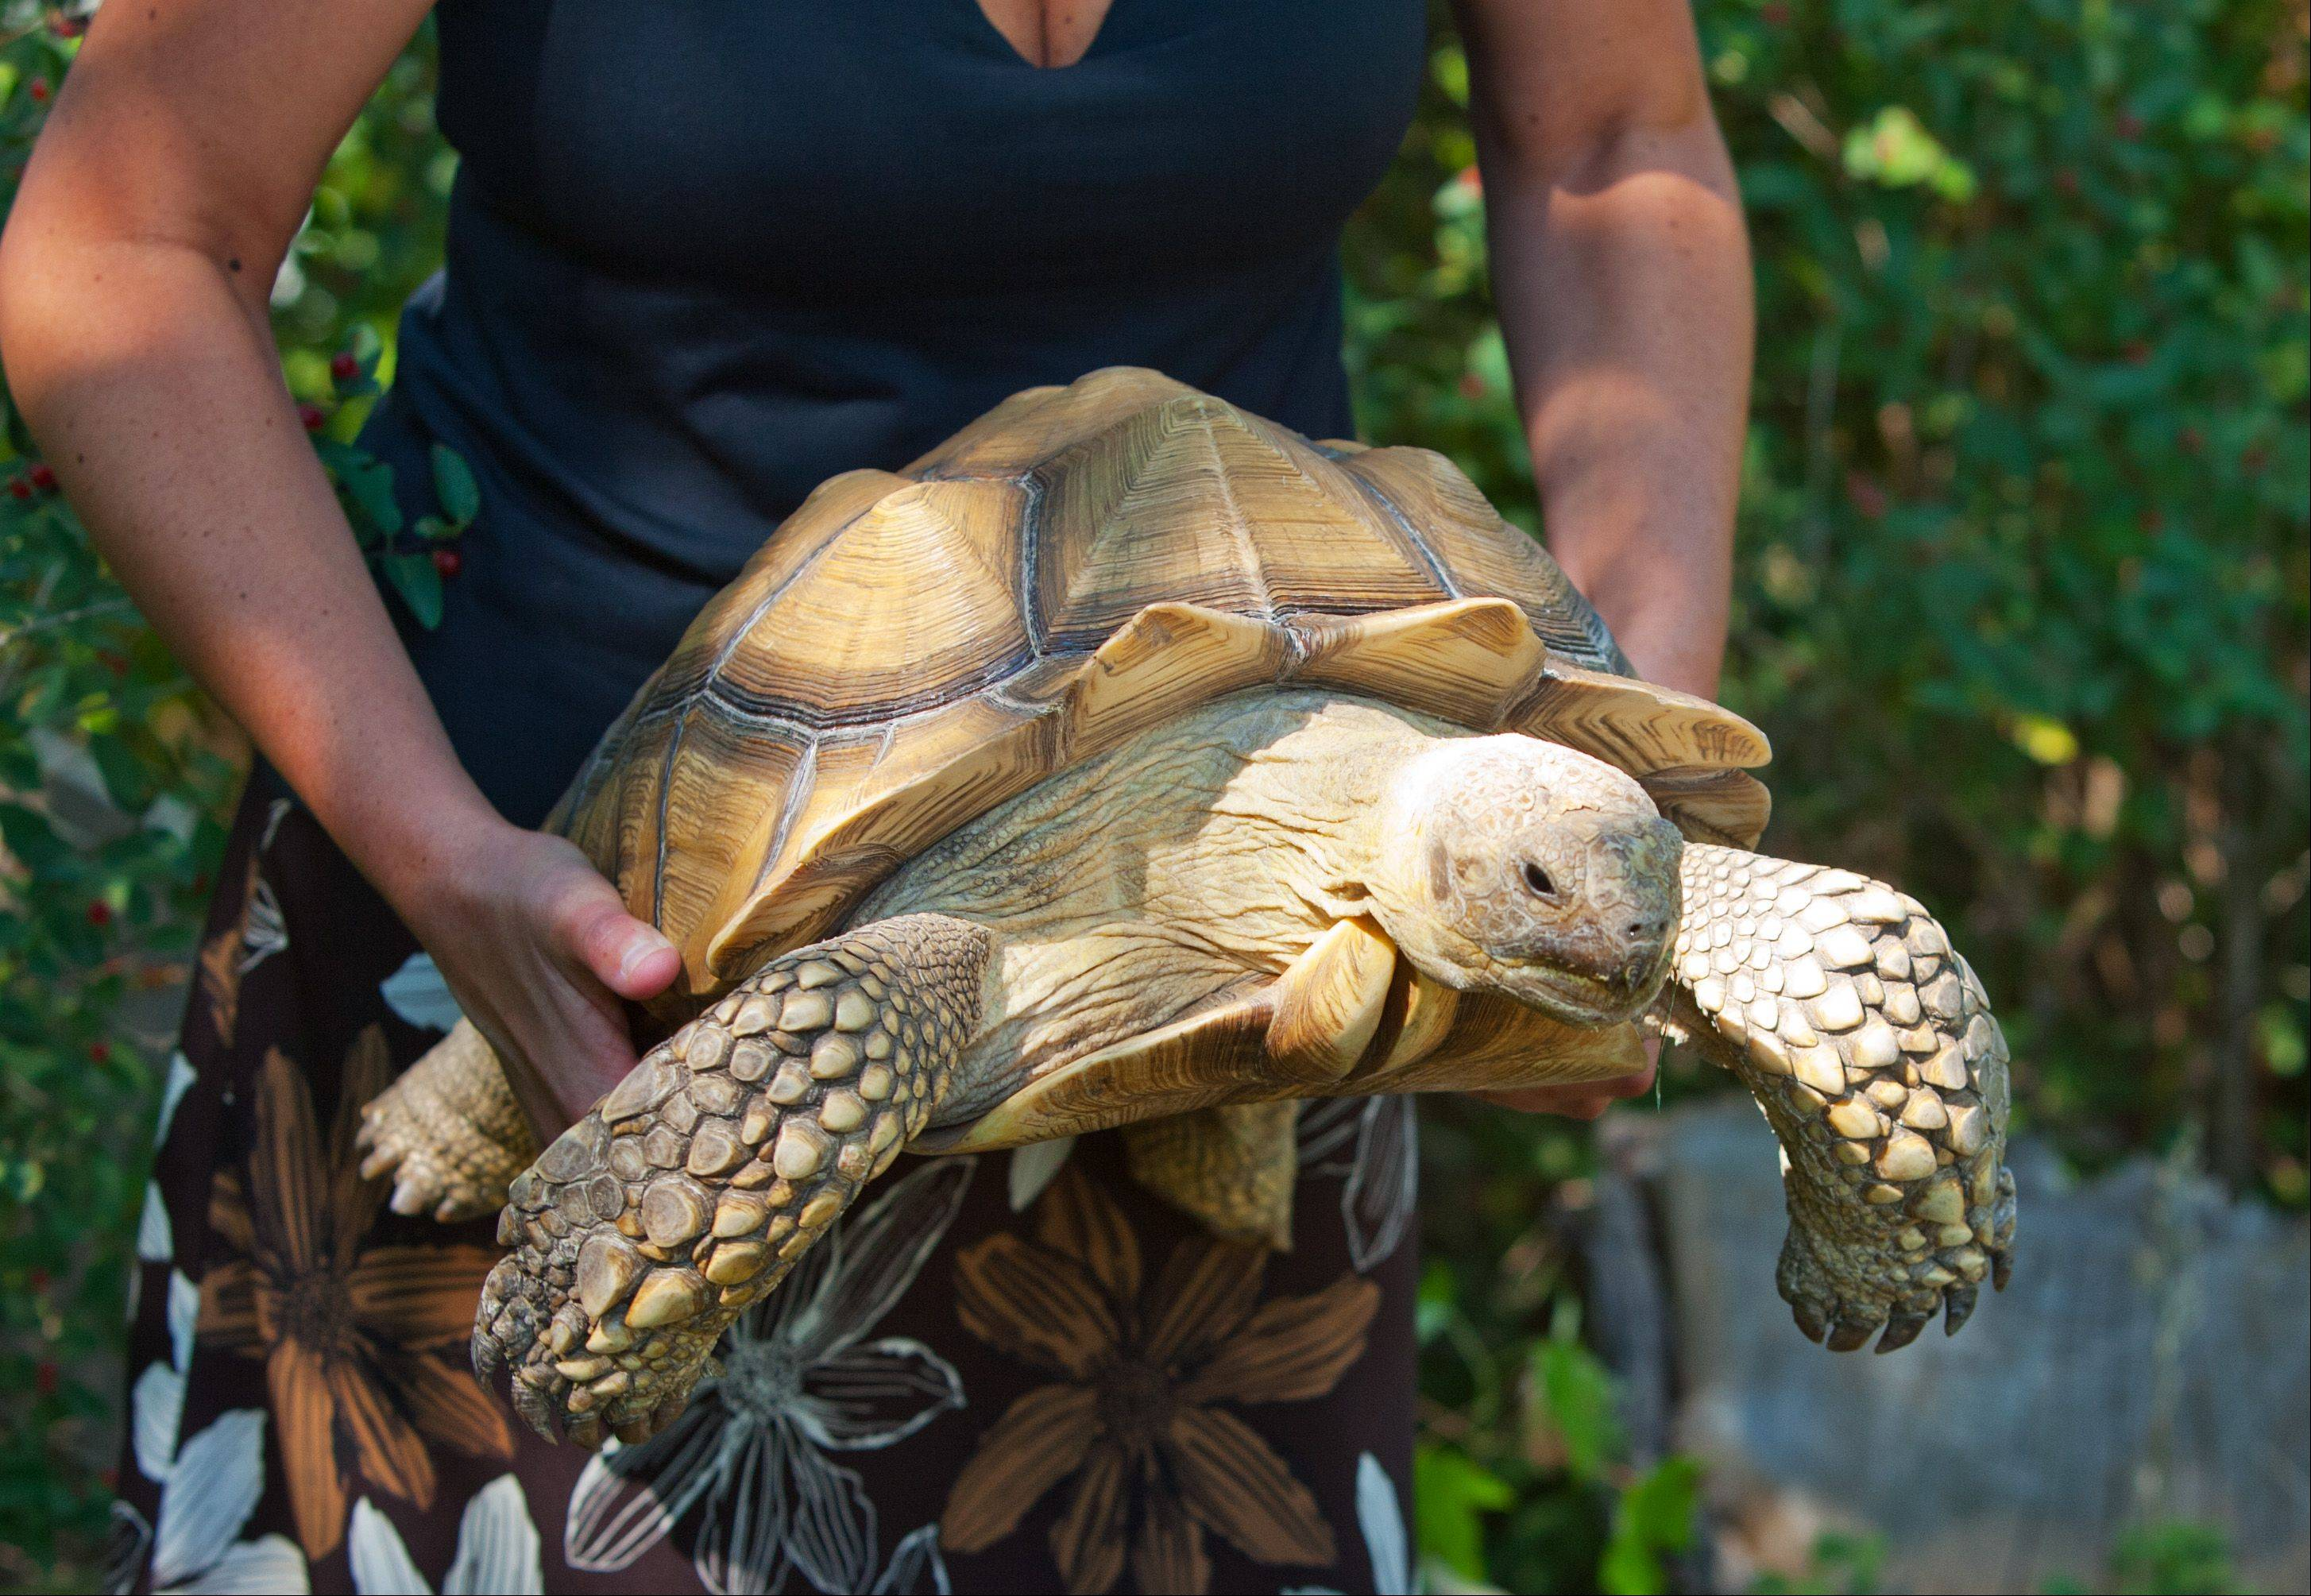 Susan Lechner of Lombard holds Lance, the family's African Spurred Tortoise, who recently escaped and is now back in an improved reinforced backyard habitat.